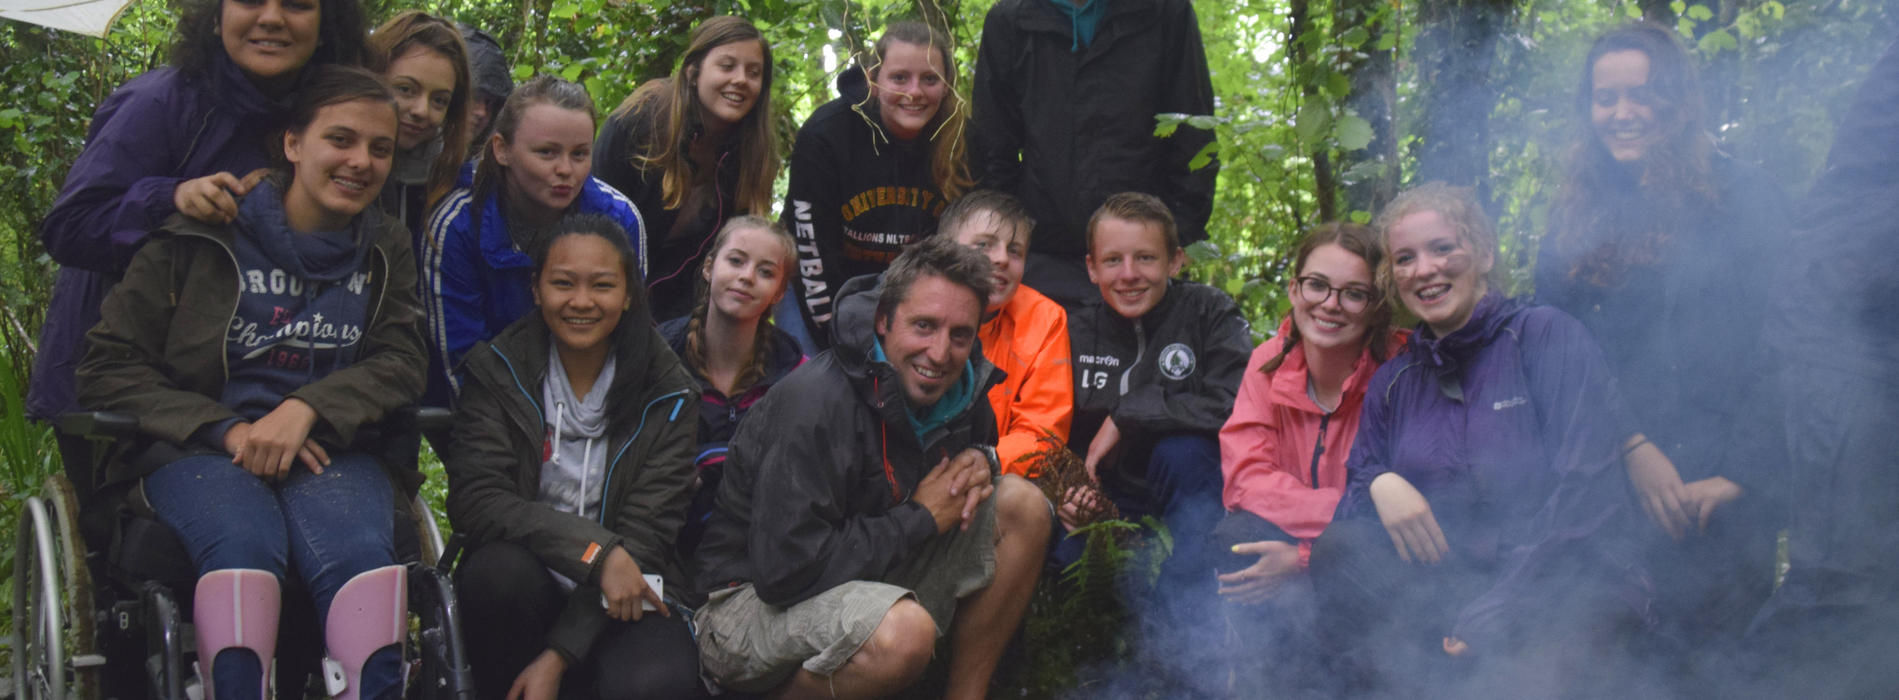 Whitehill Country Park's Bushcraft Session